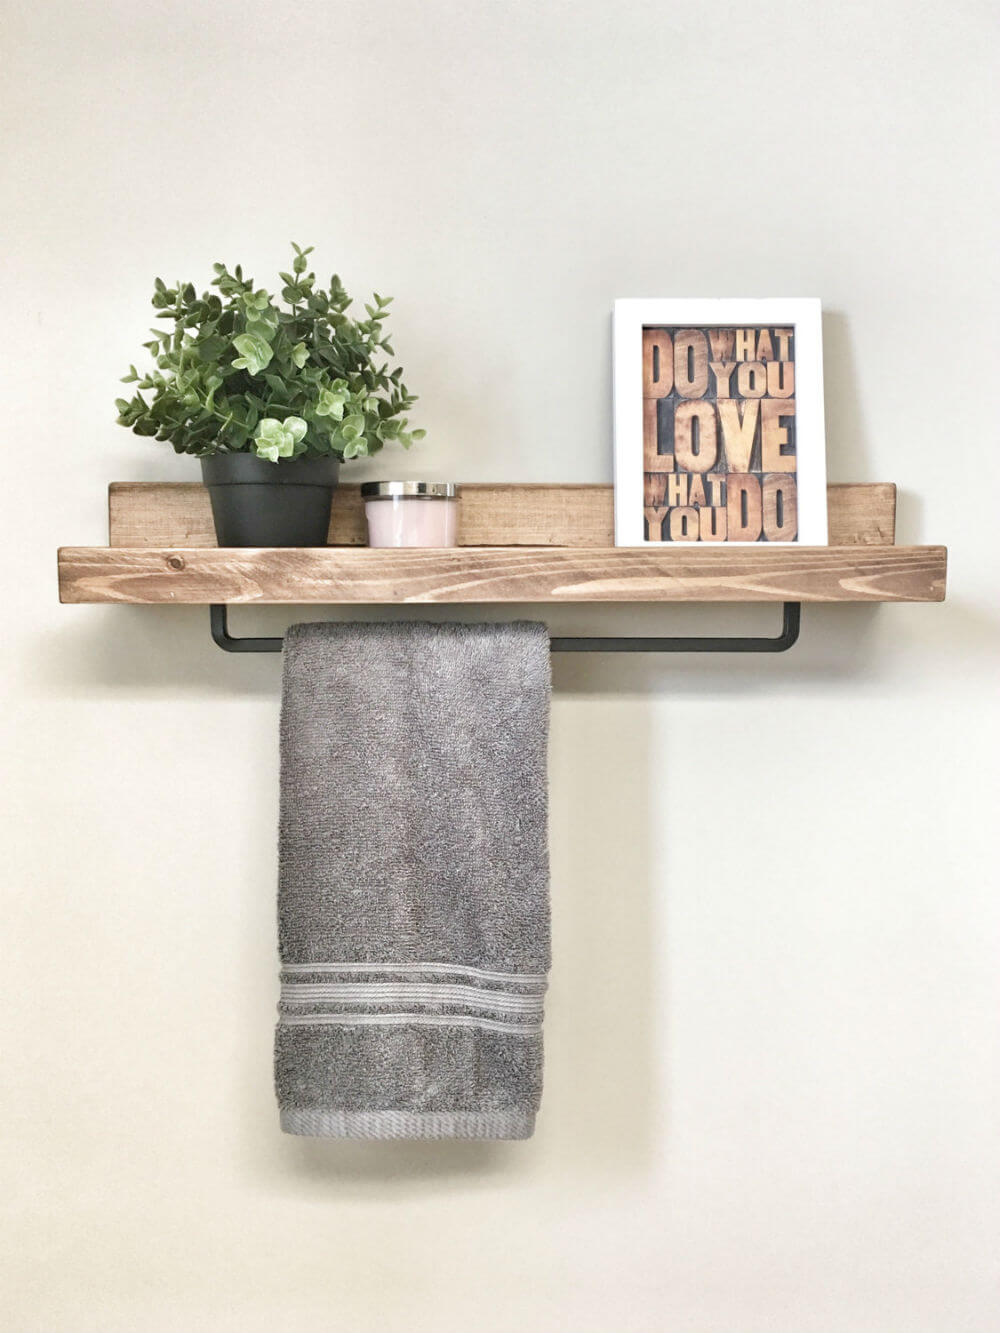 Wooden Floating Shelf with Iron Towel Rack